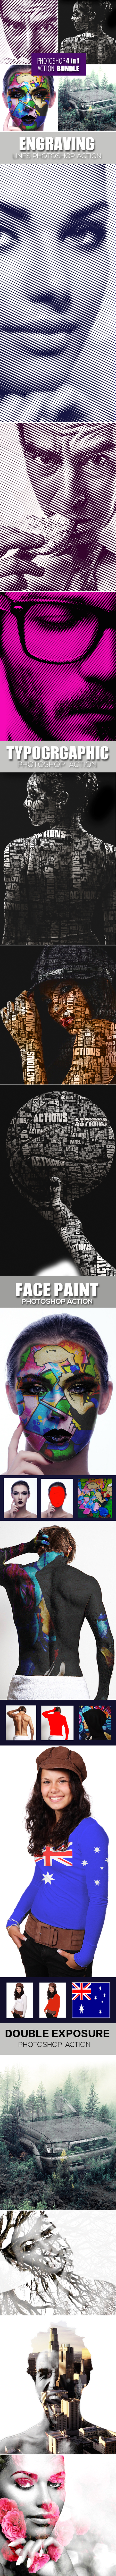 Photoshop 4in1 Actions Bundle - Photo Effects Actions